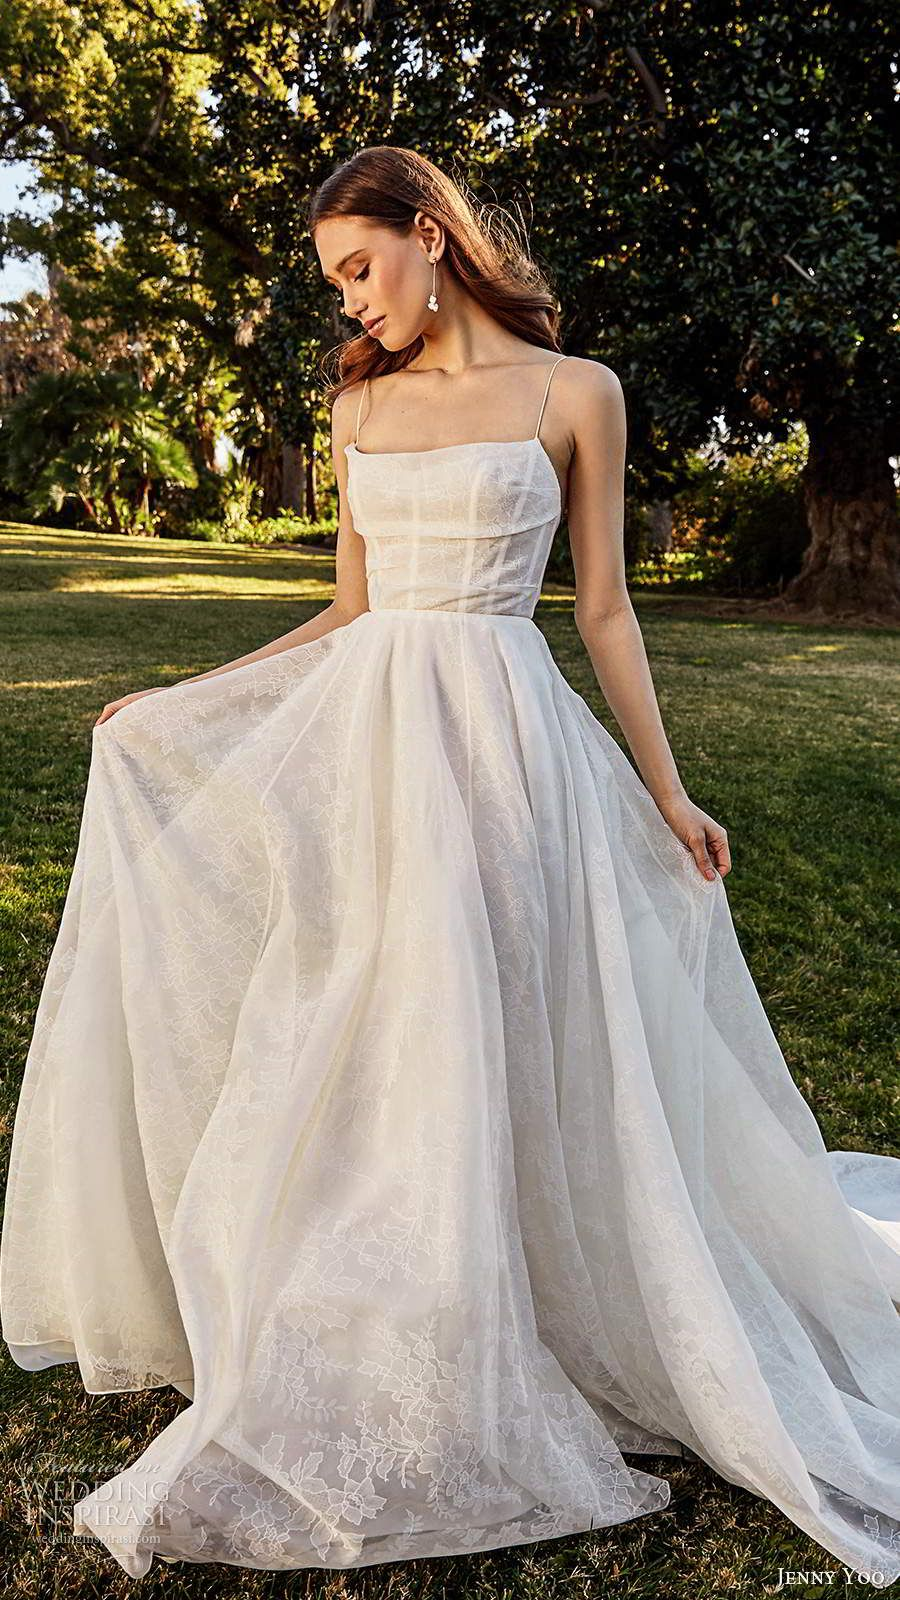 2020 New Wedding Dress Fashion Dress used bridal gowns tight fitted formal dresses